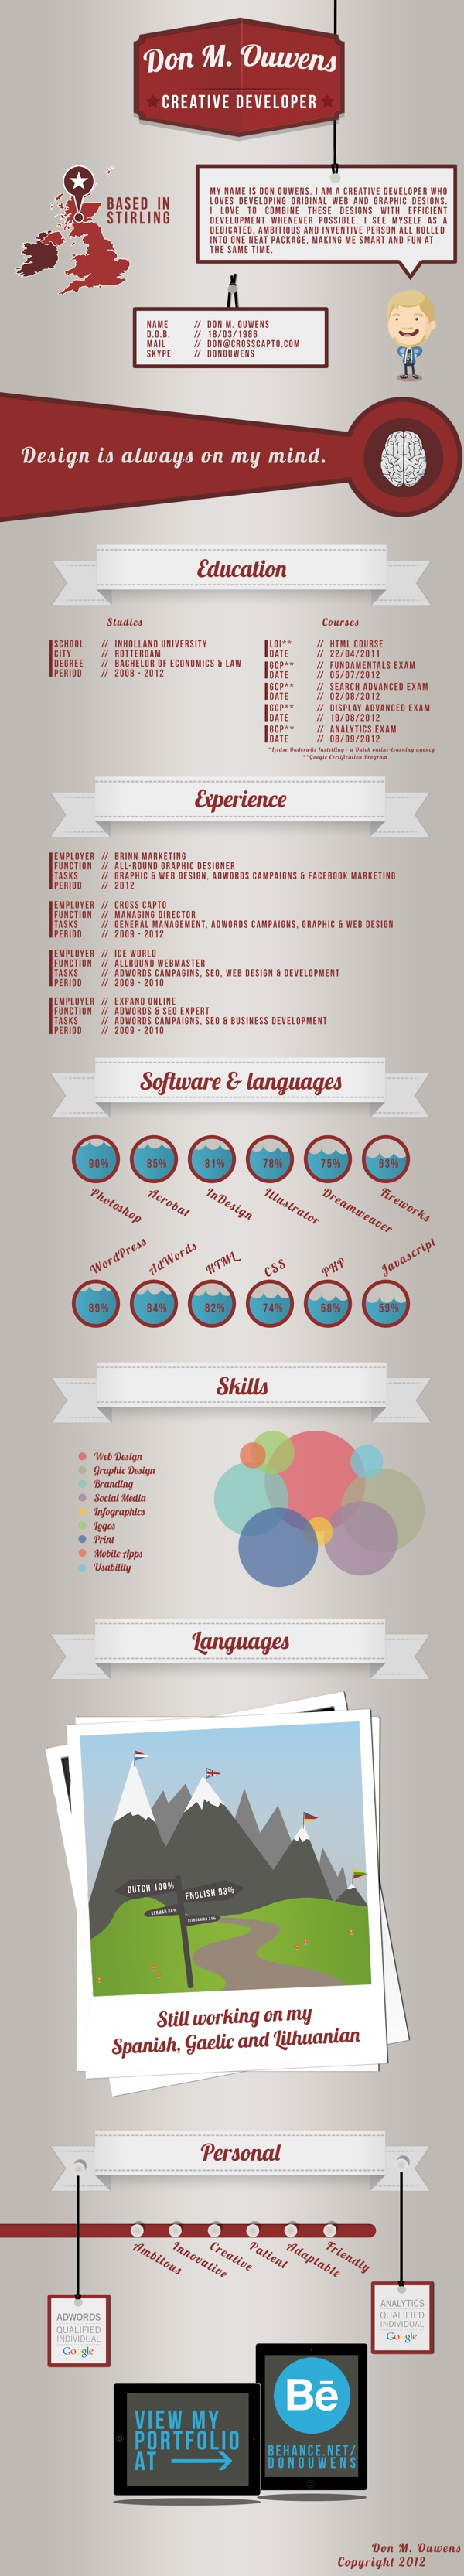 My Infographic Resume by Don Ouwens via